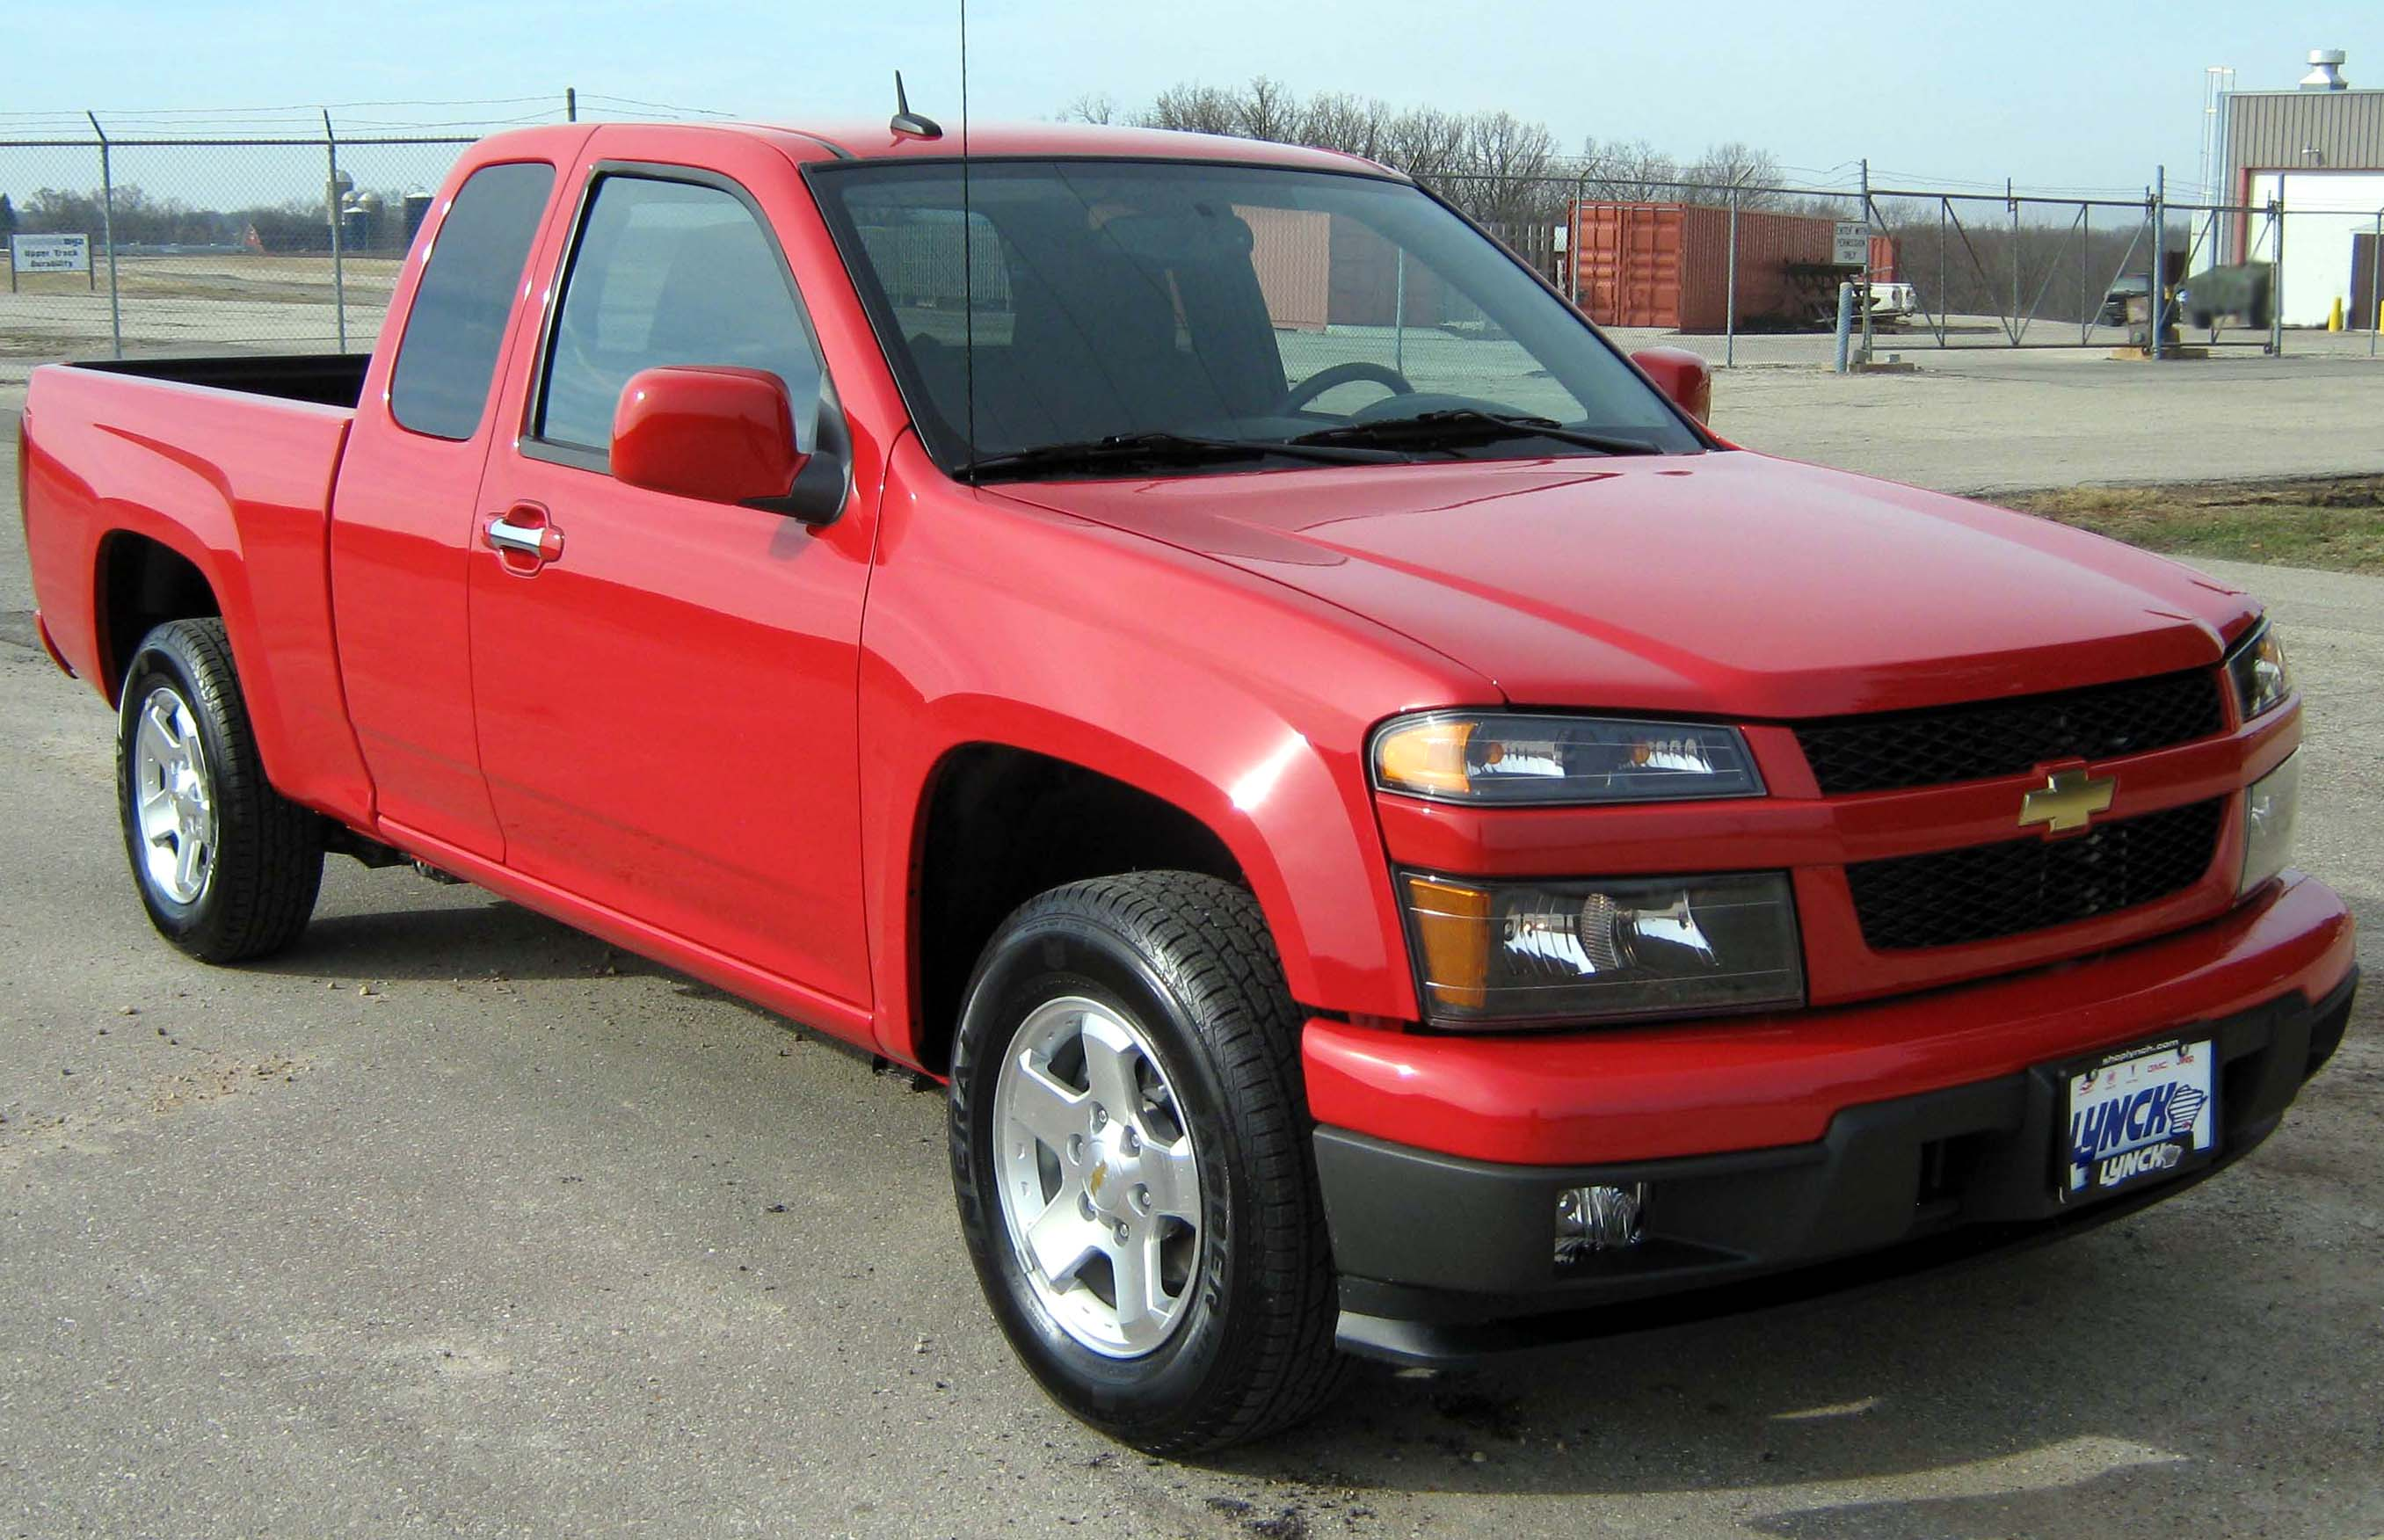 Chevrolet colorado news midnight edition trail boss versions revealed page 2 page 2 acurazine acura enthusiast community